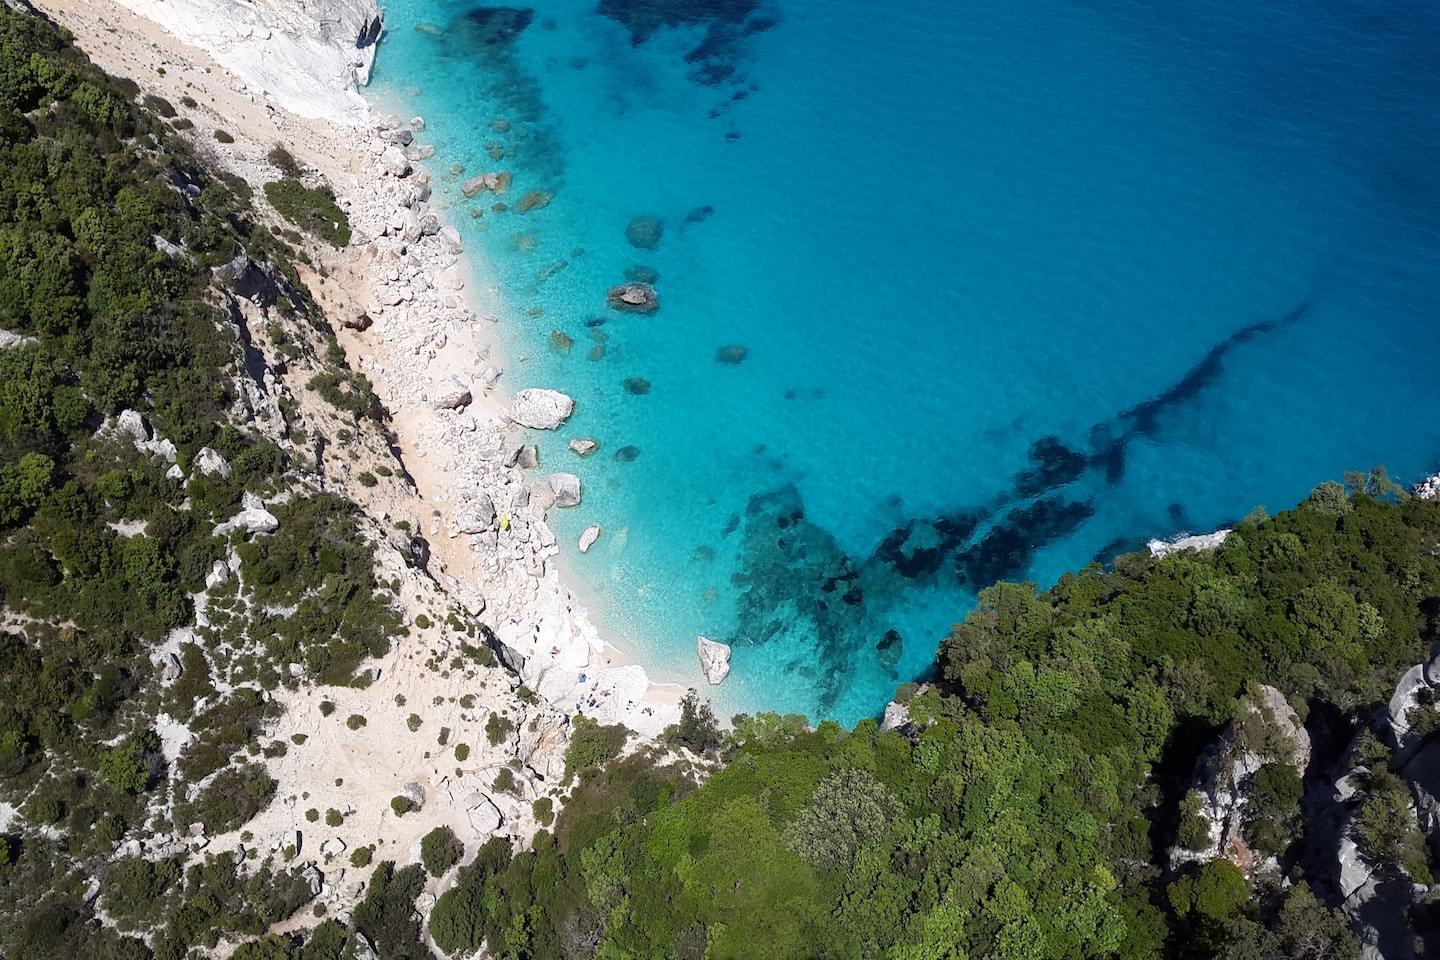 turquoise water with beach and surrounding greenery